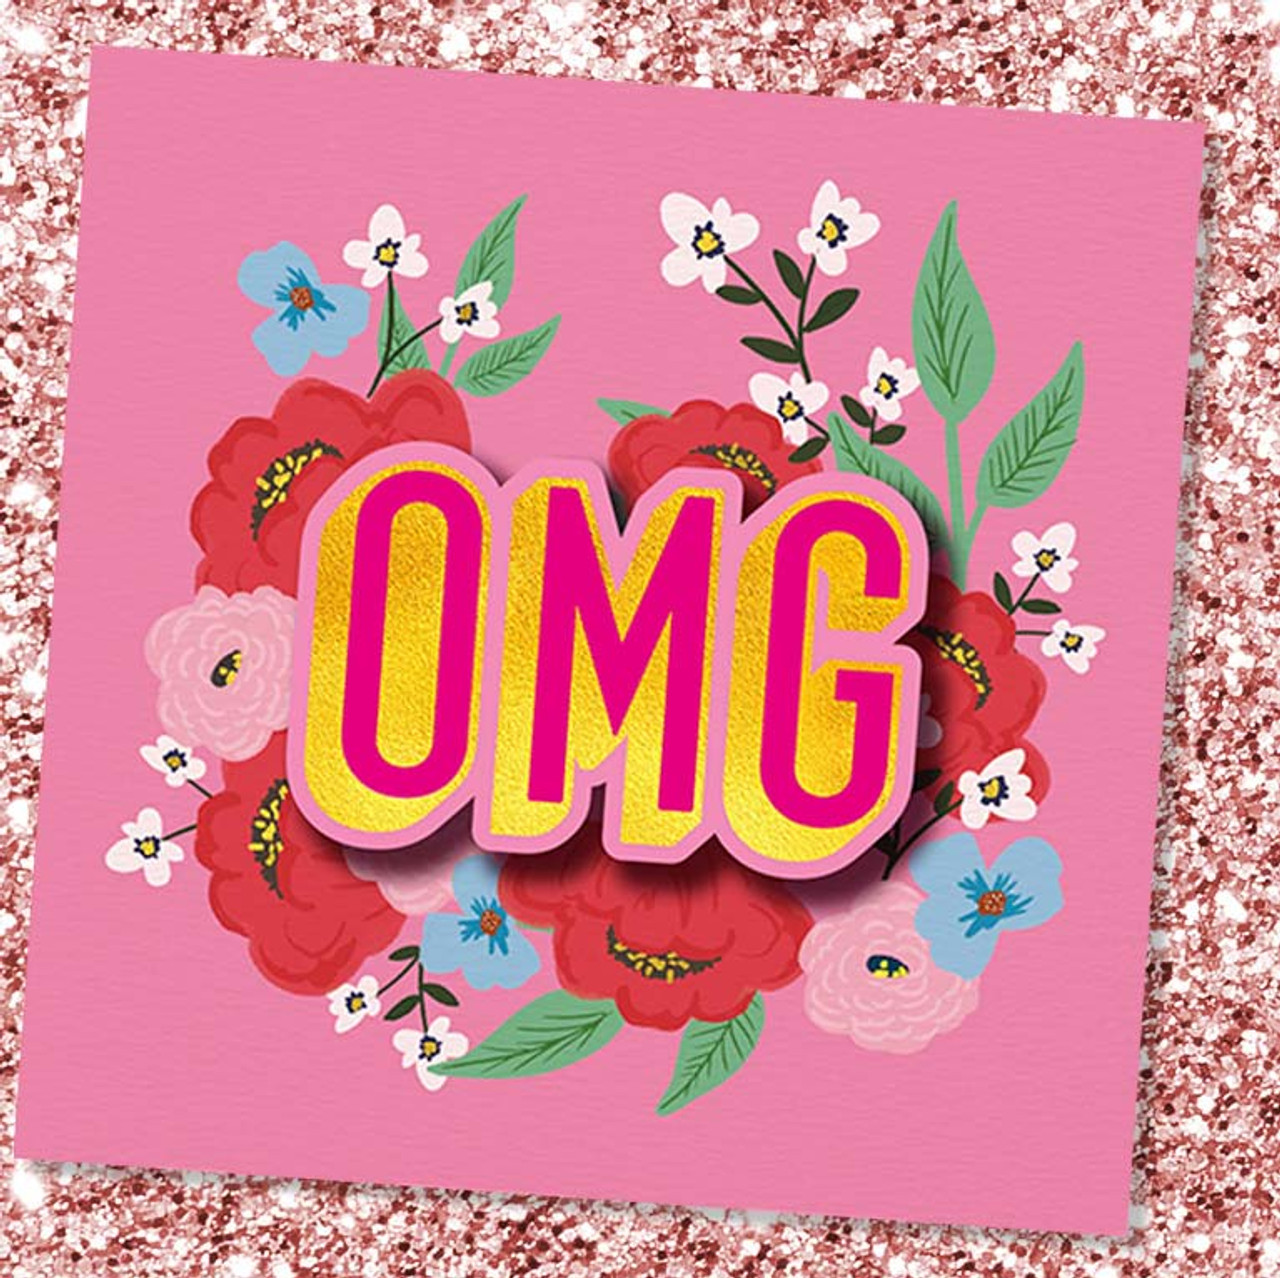 OMG Foiled Greeting Card by Tache